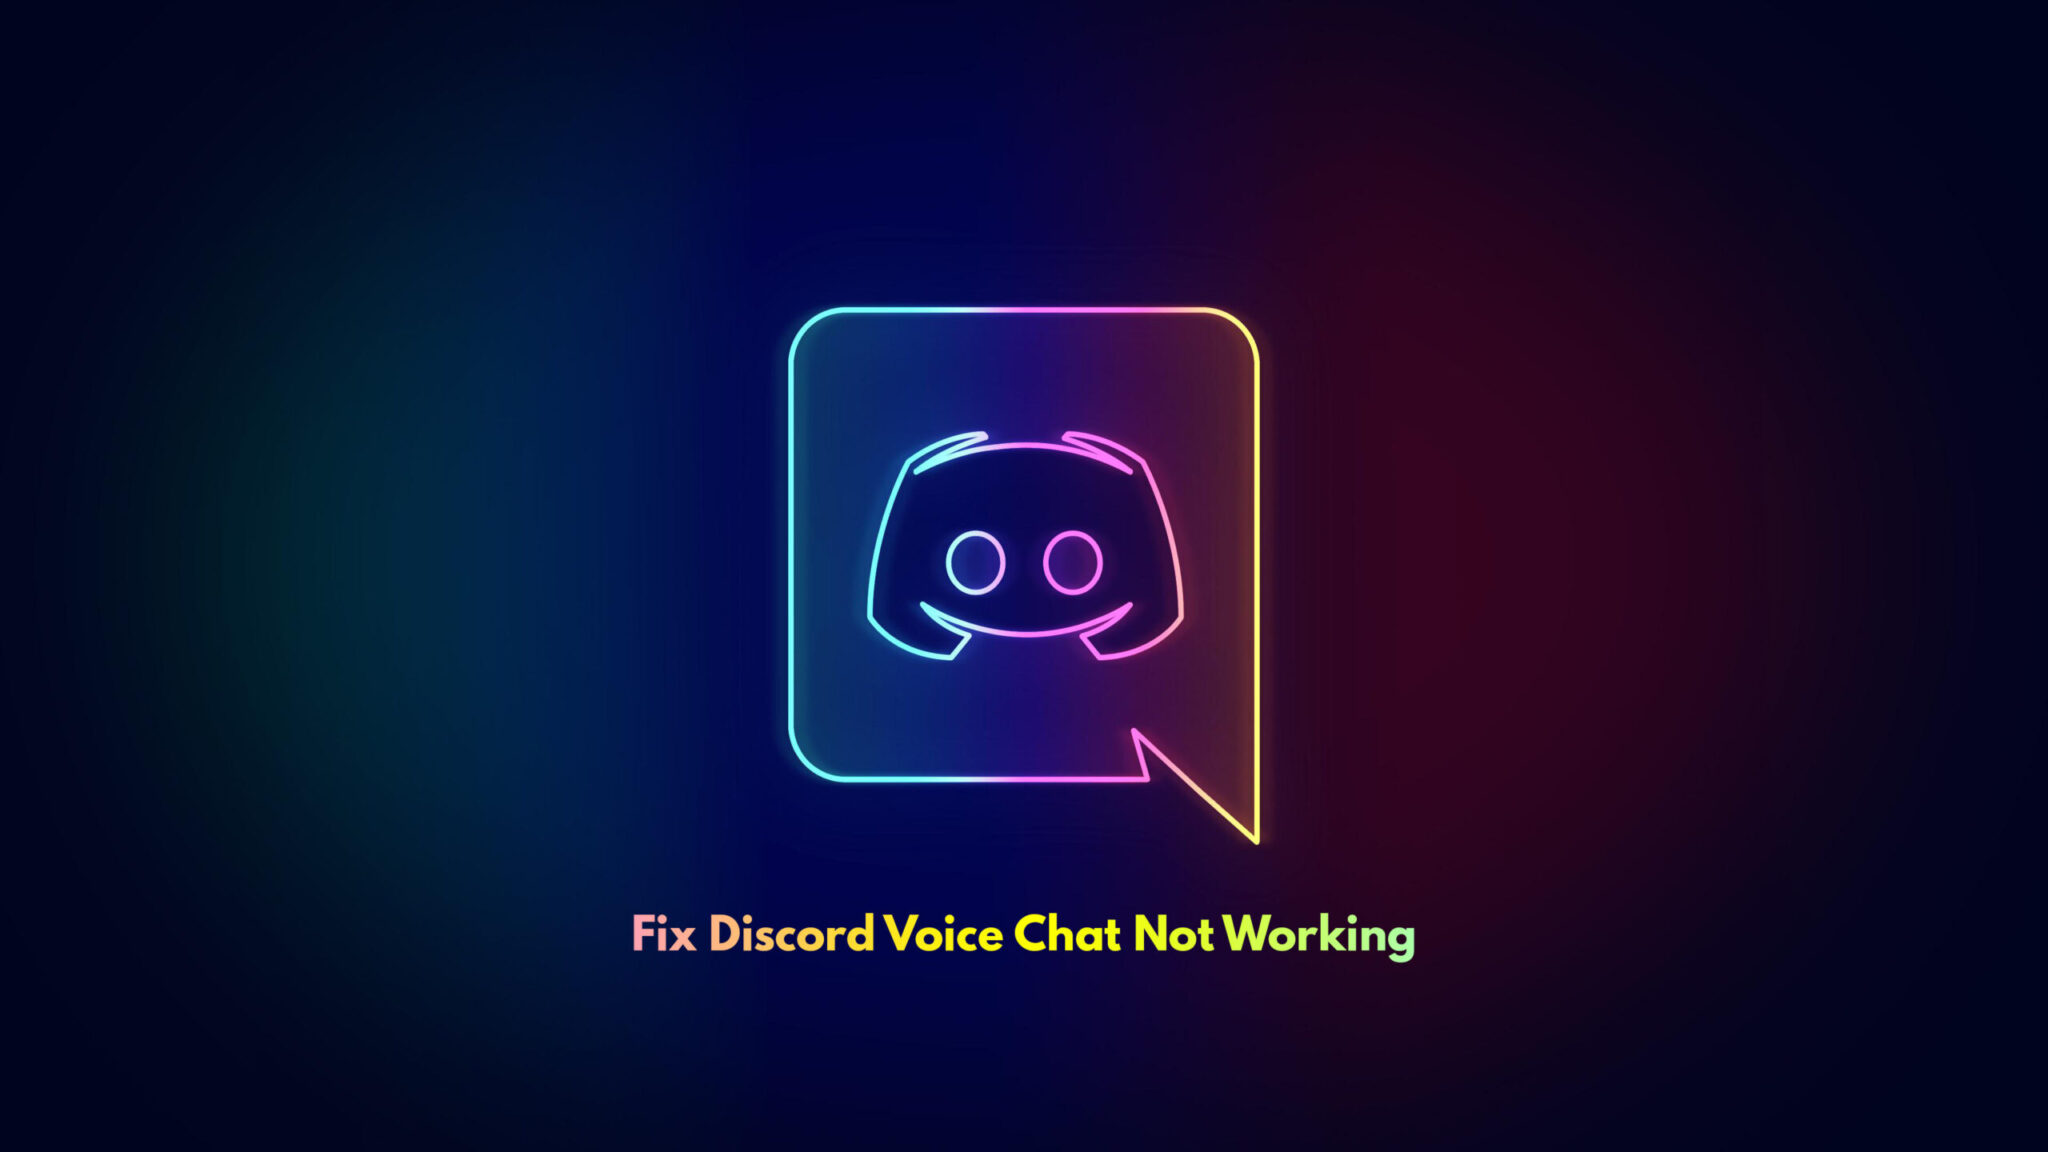 Fix Discord Voice Chat Not Working